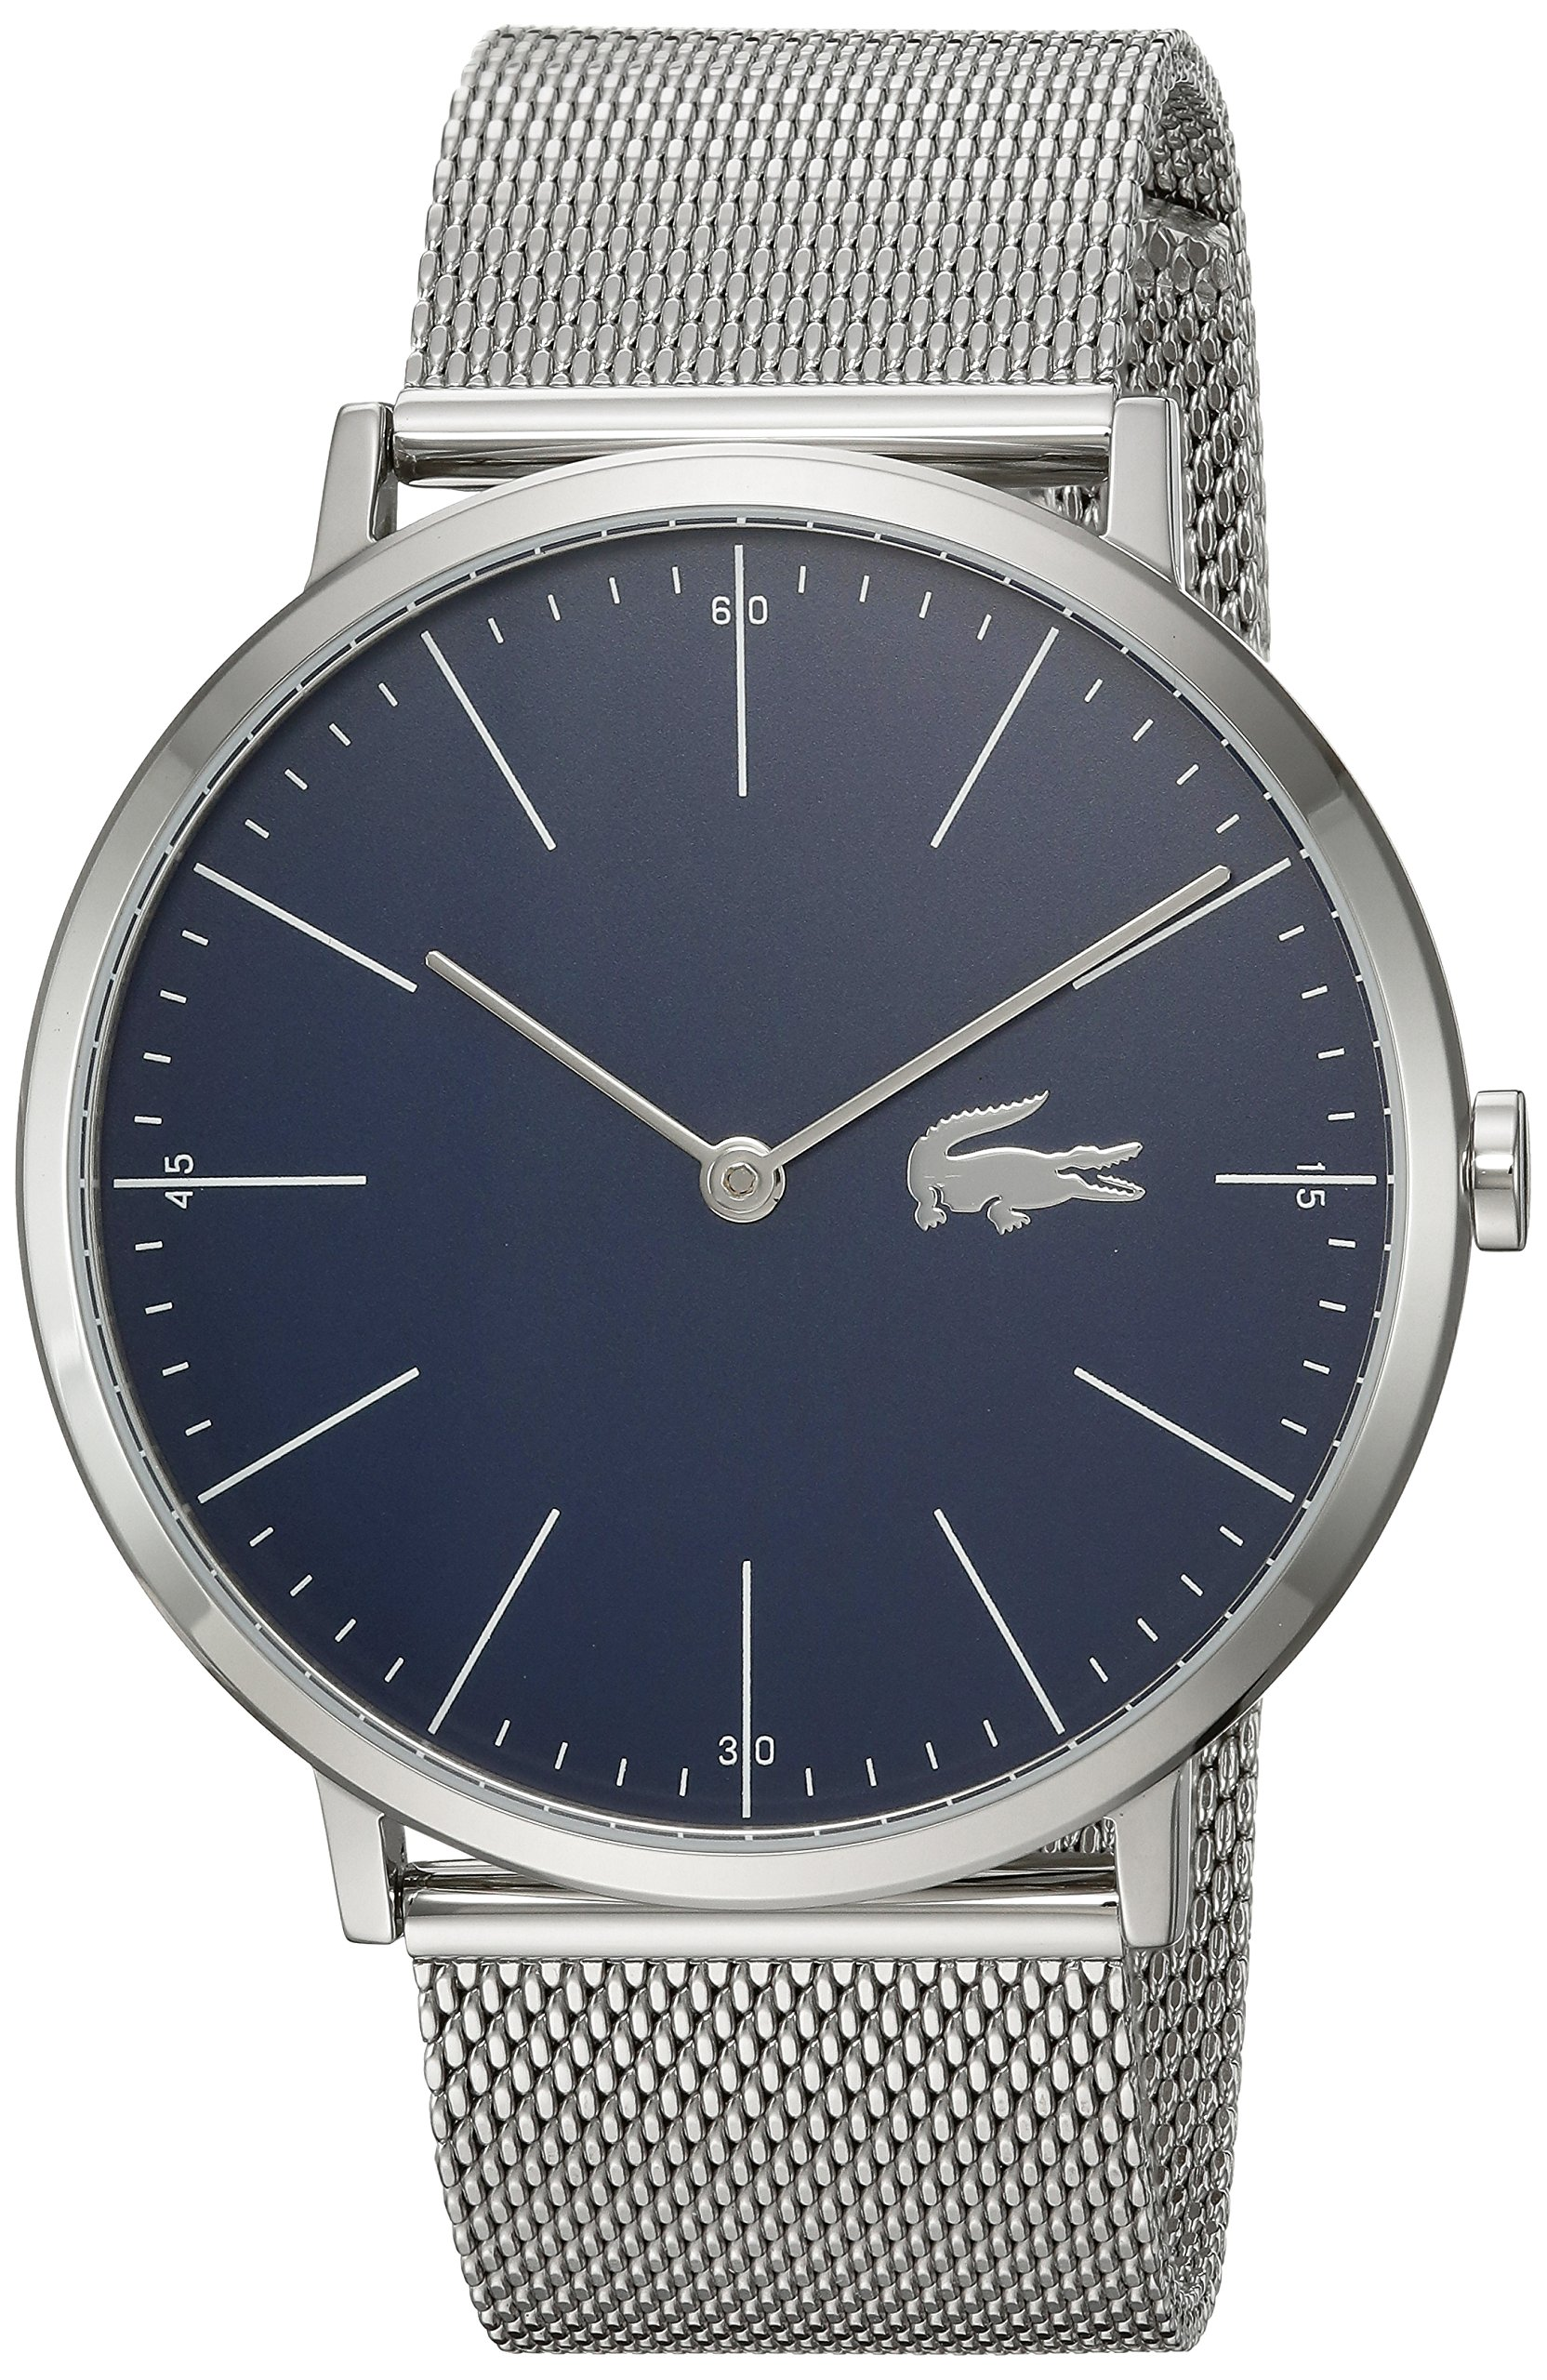 Lacoste Men's Moon Quartz Watch with Stainless-Steel Strap, Silver, 20 (Model: 2010900) by Lacoste